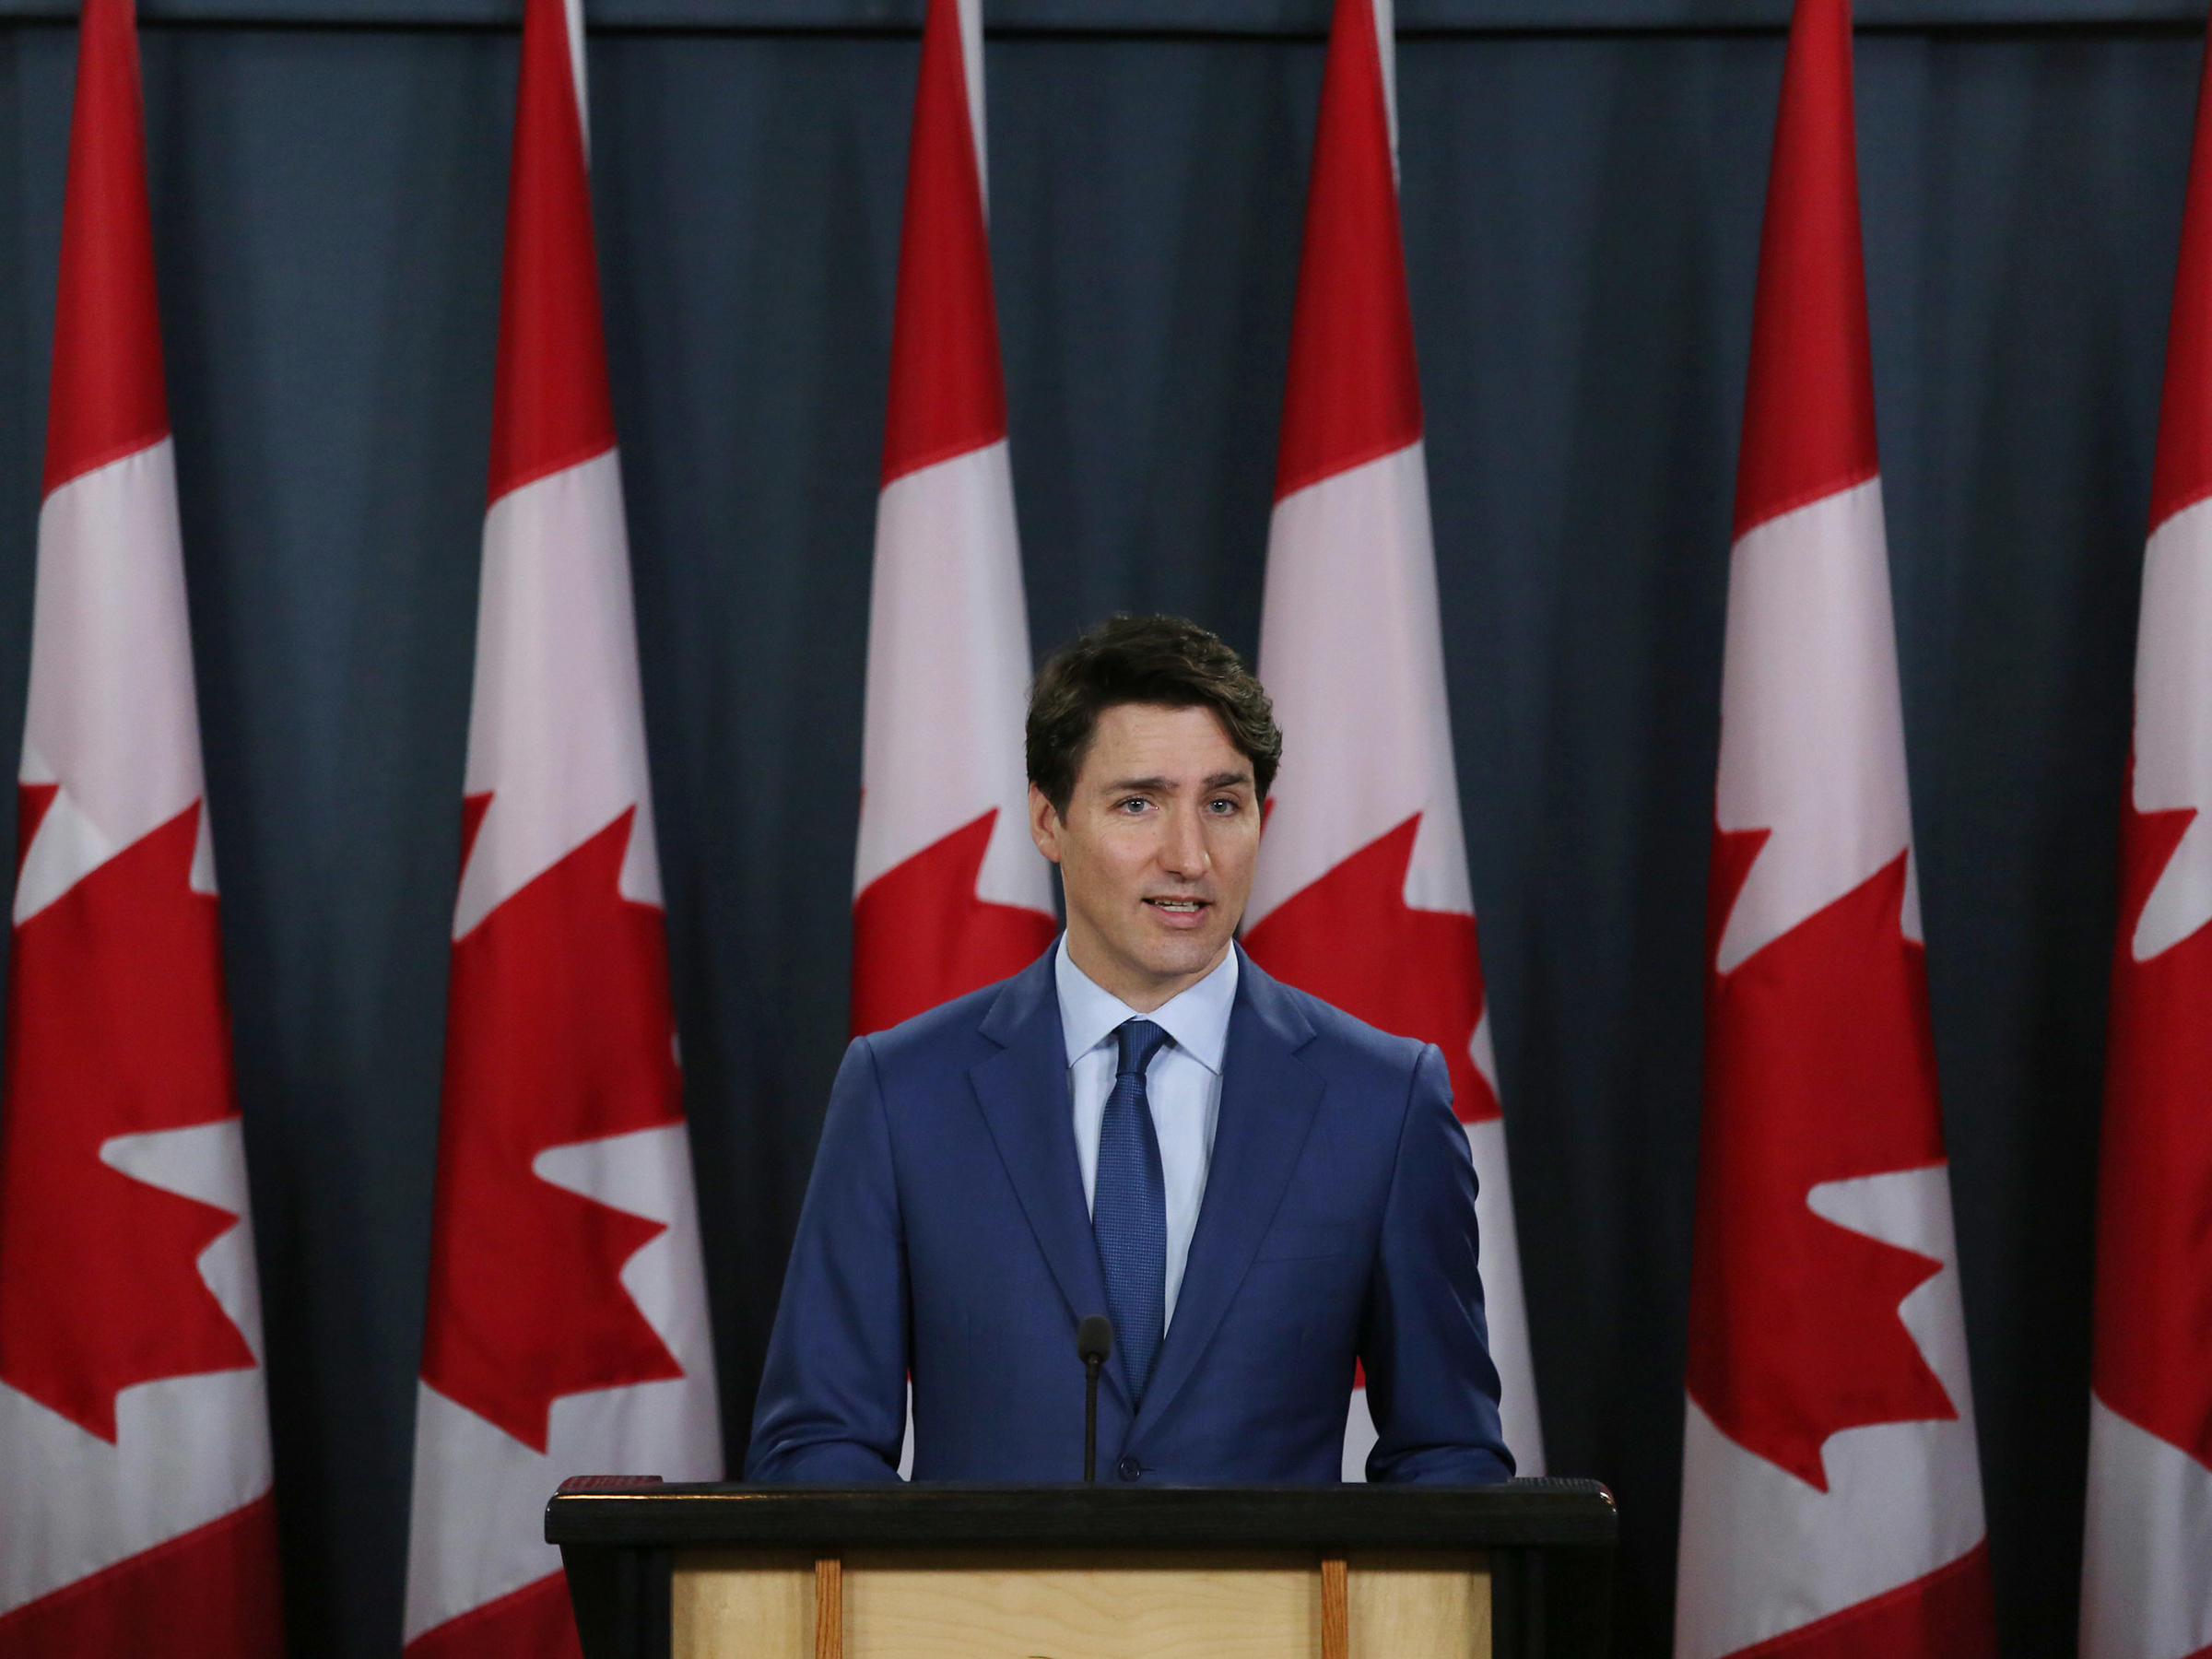 Justin Trudeau regrets 'erosion of trust' over political scandal